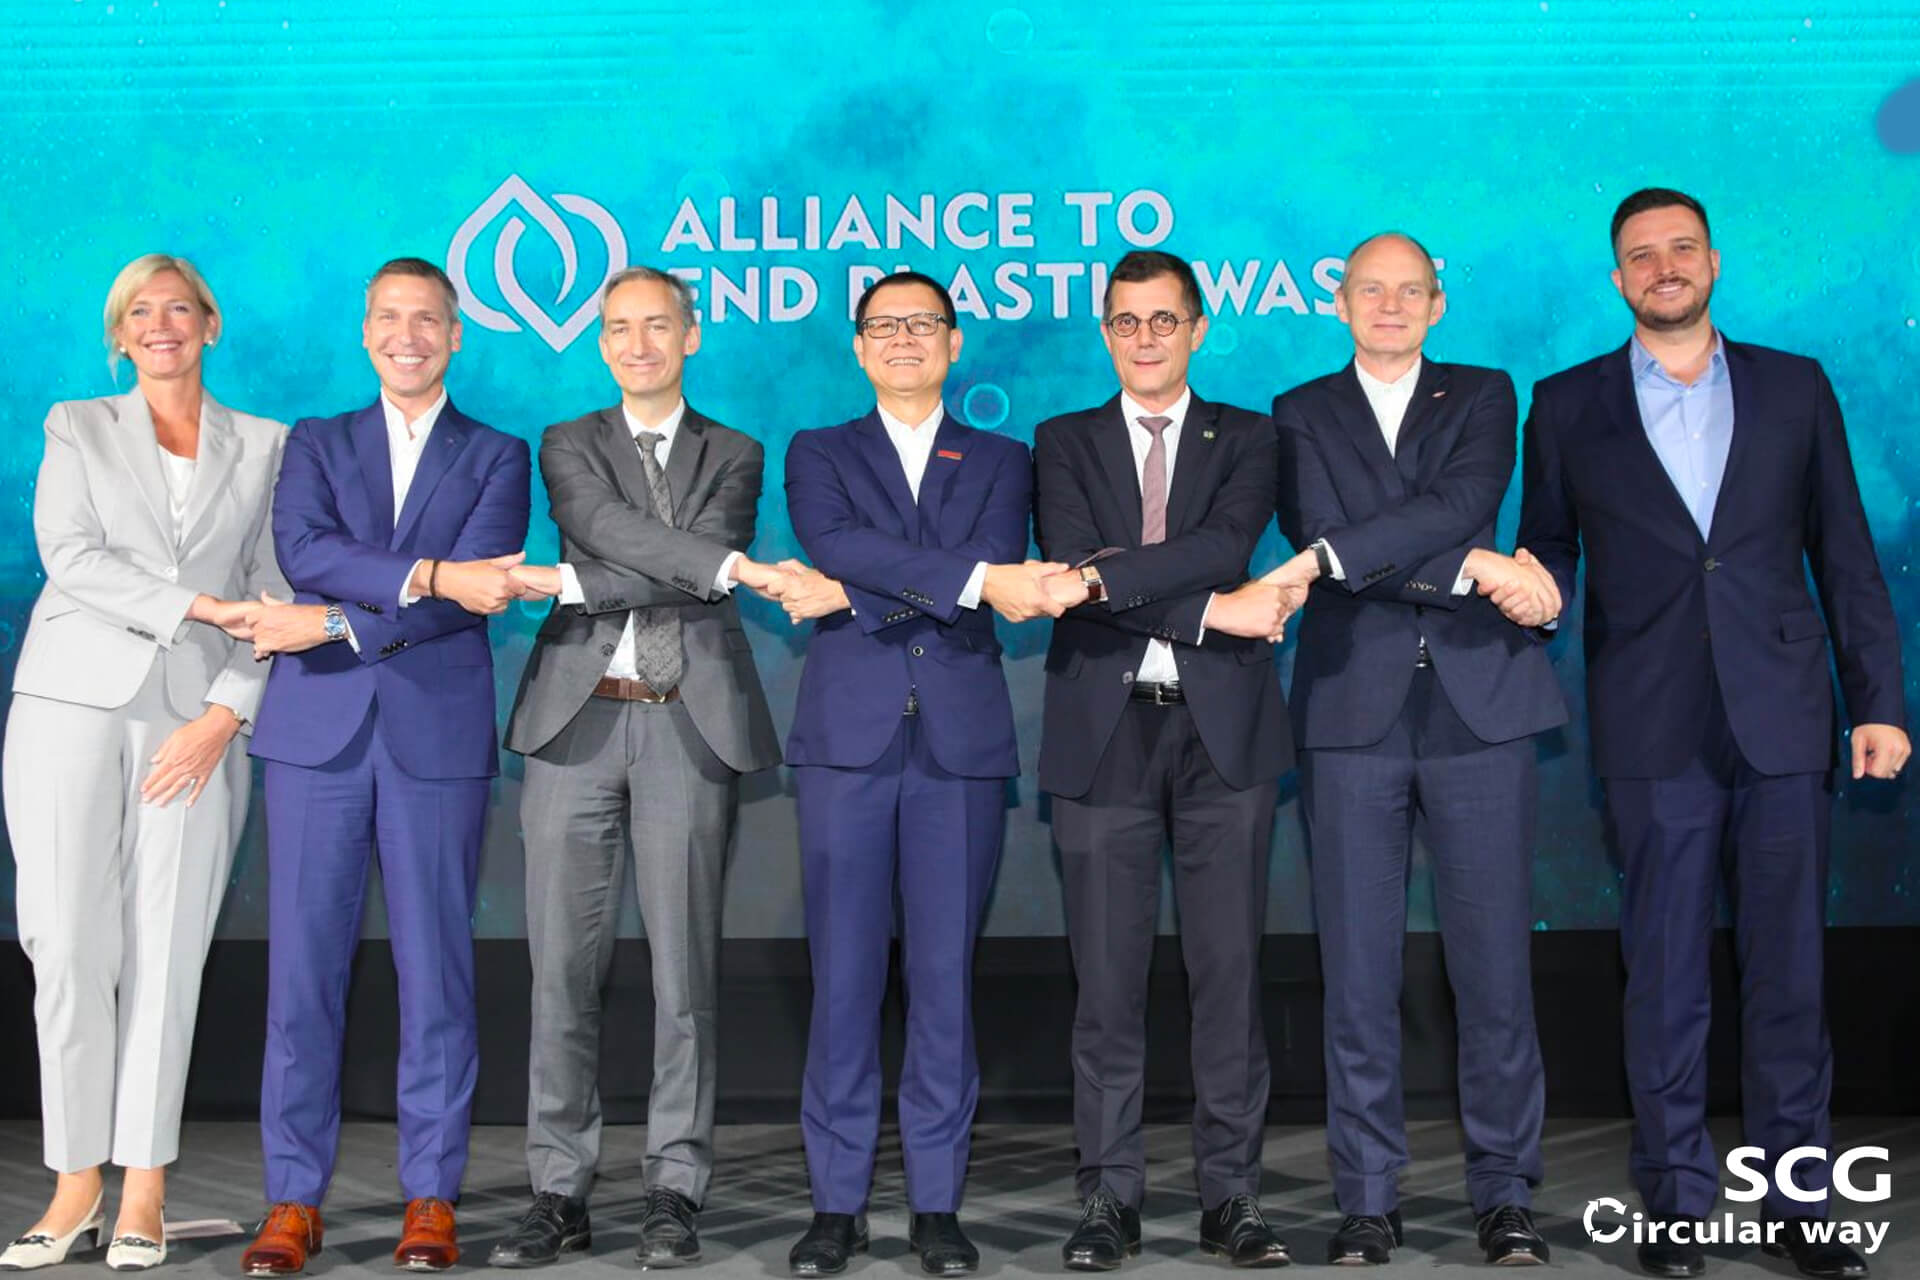 Collaboration with Partners on the Alliance to End Plastic Waste (AEPW)